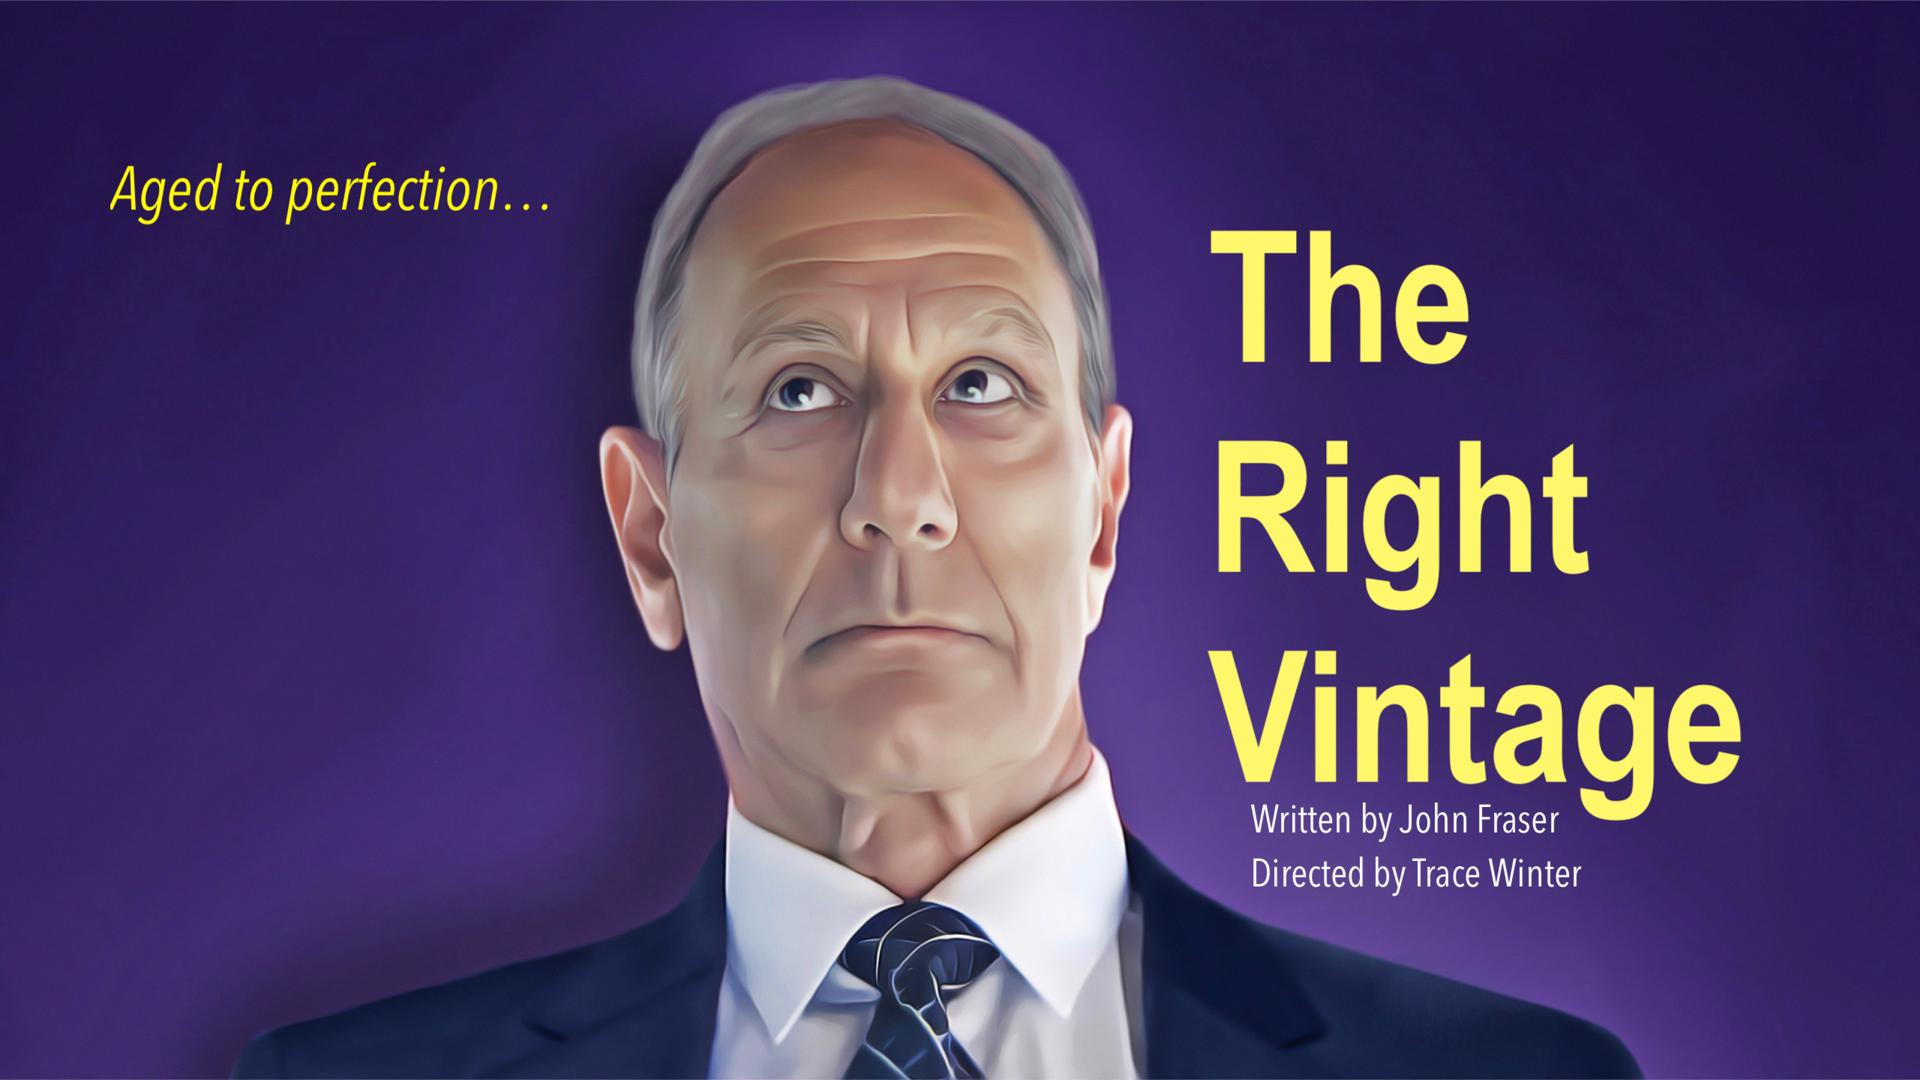 The Right Vintage